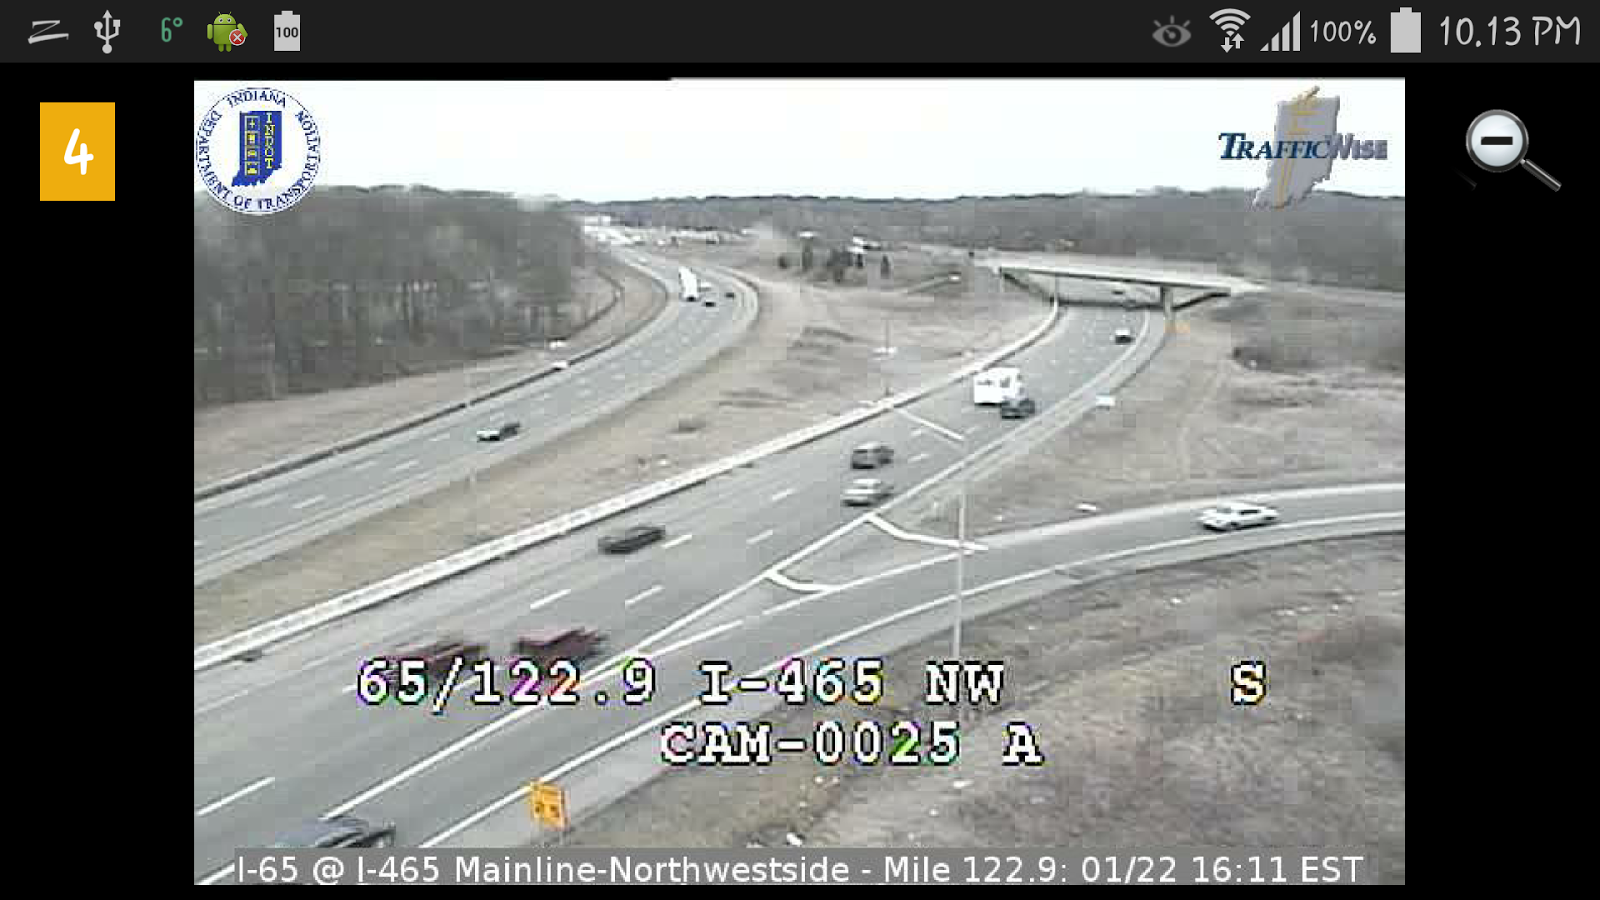 Cameras Indiana - traffic cams - Android Apps on Google Play